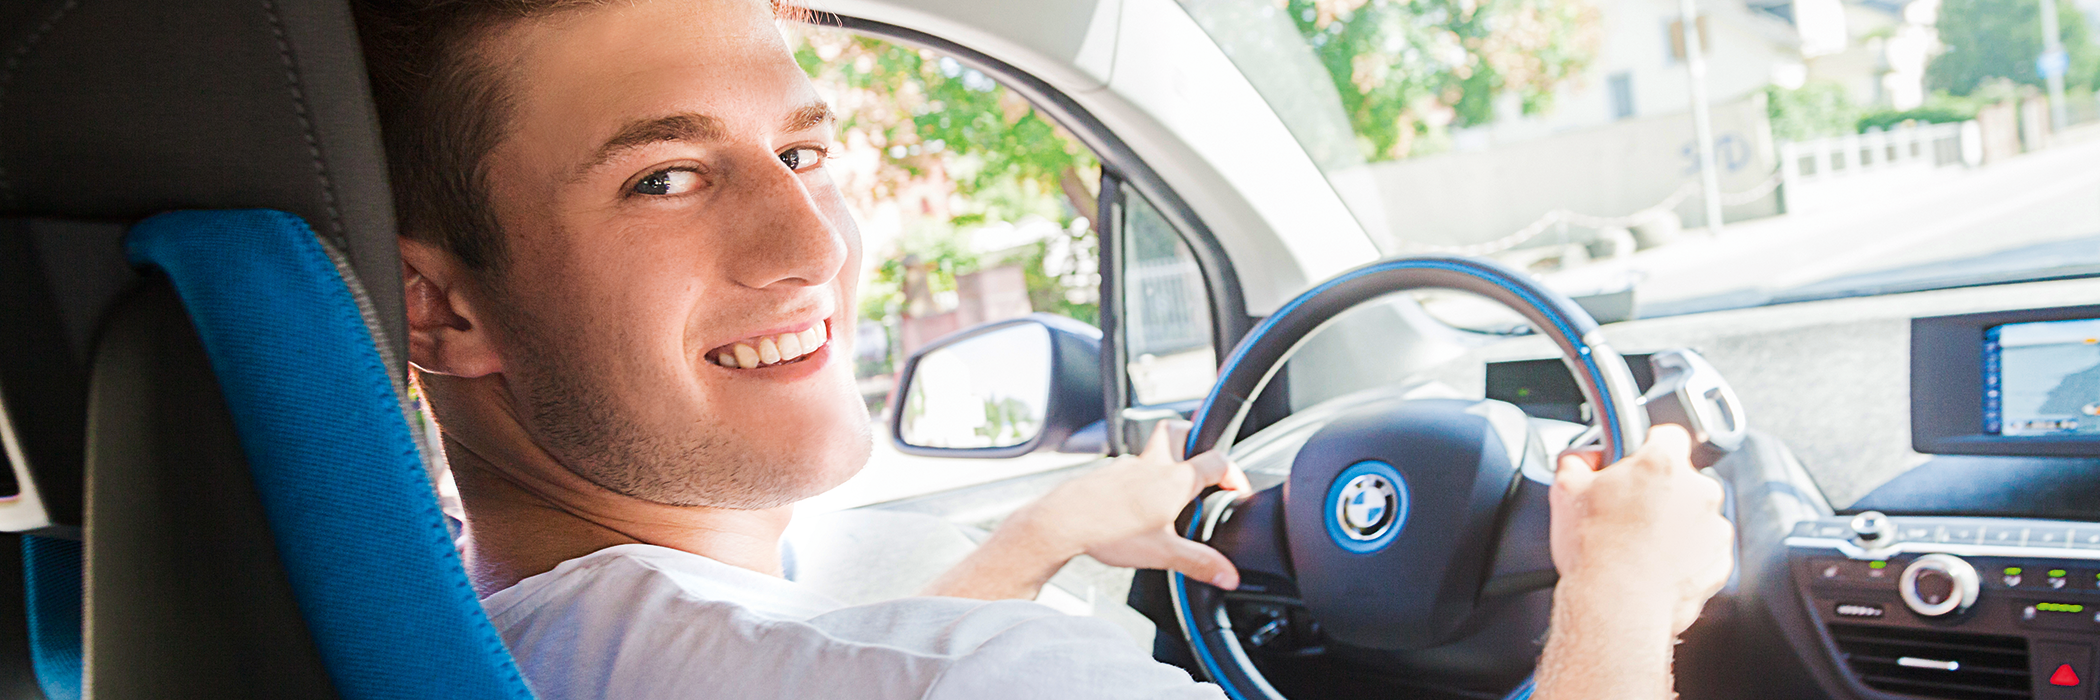 Junger Mann in E-Carsharing Auto.